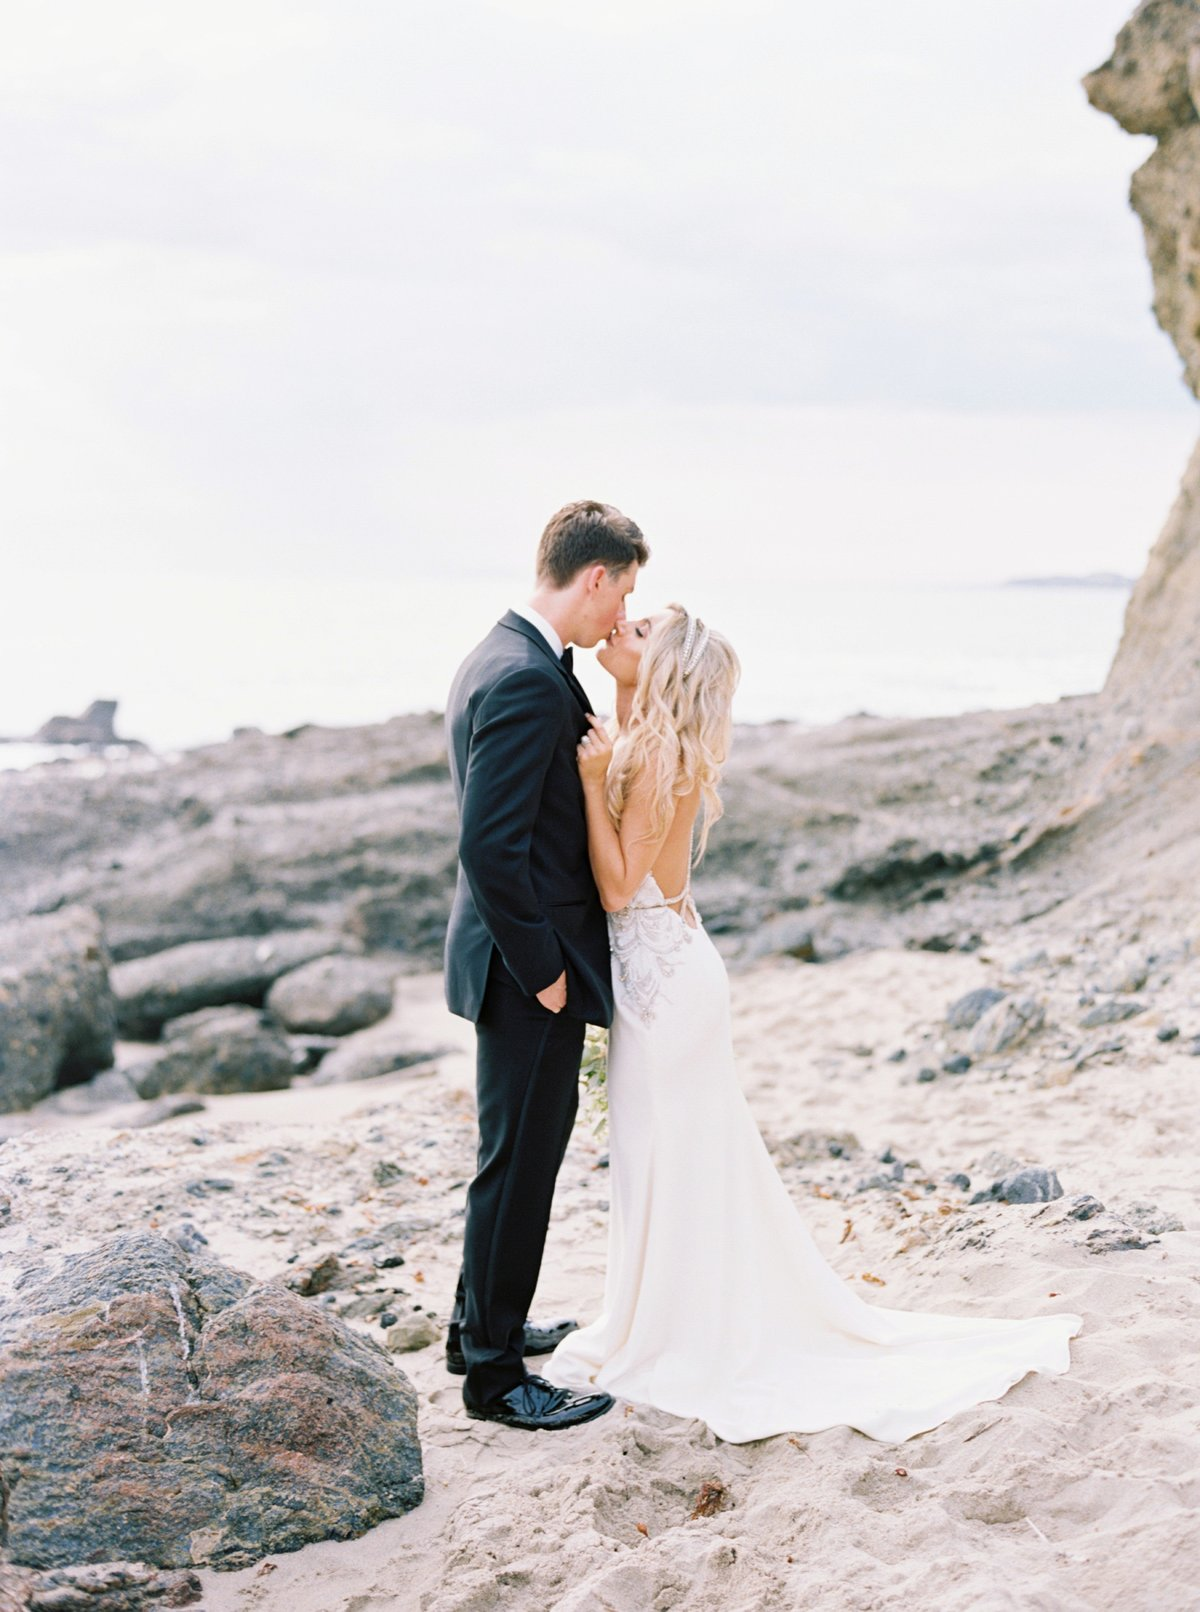 nicoleclareyphotography_evan+jeff_laguna beach_wedding_0021